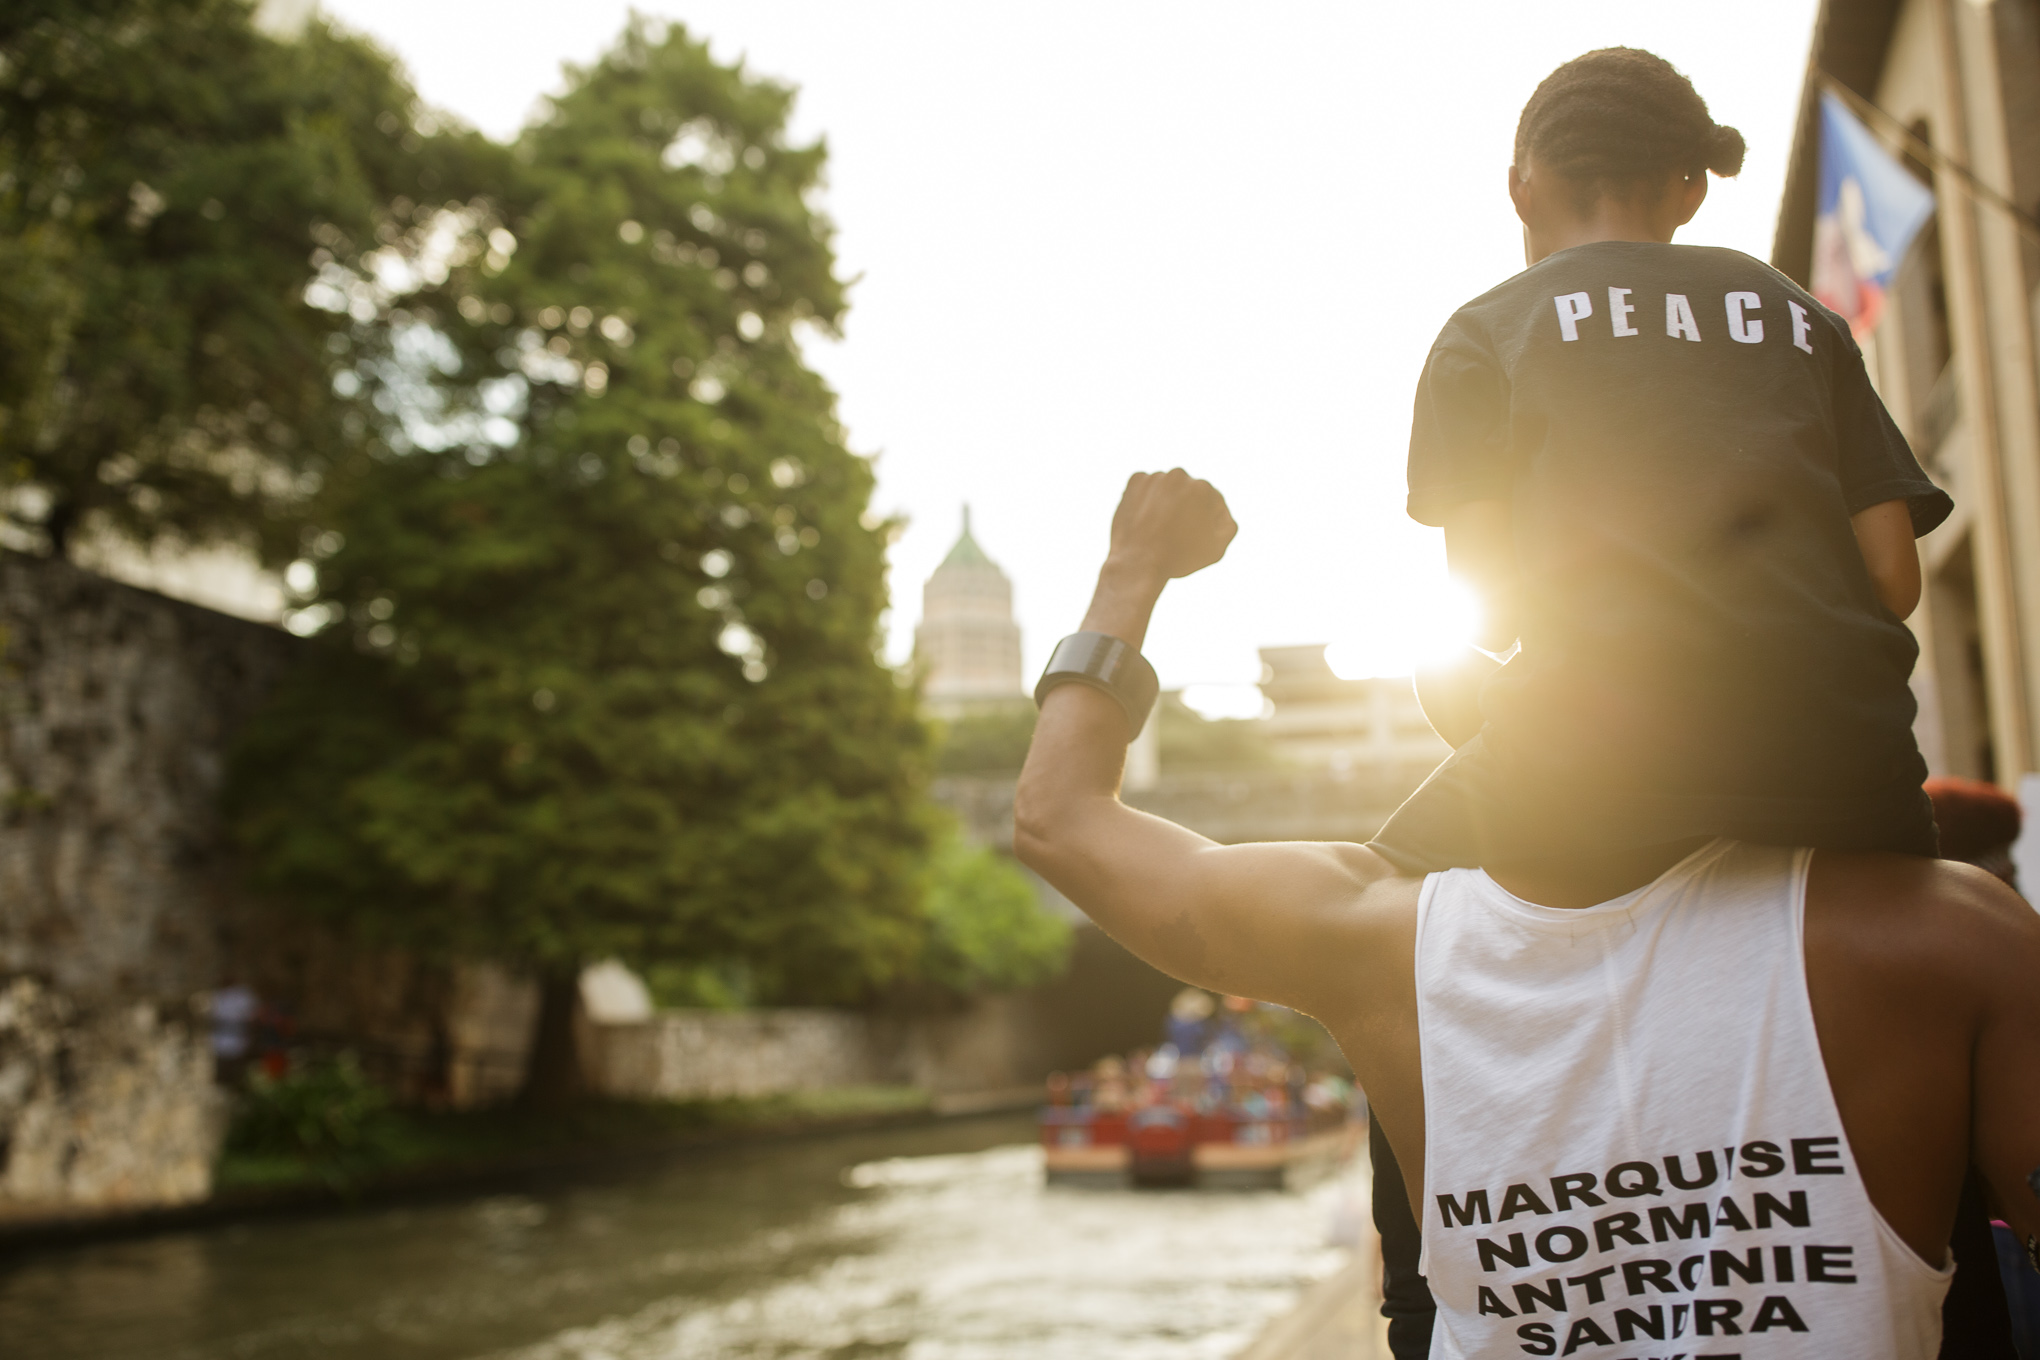 Mike Lowe raises his fist as he carries his daughter Naomi, 9, along the San Antonio River Walk. Photo by Scott Ball.